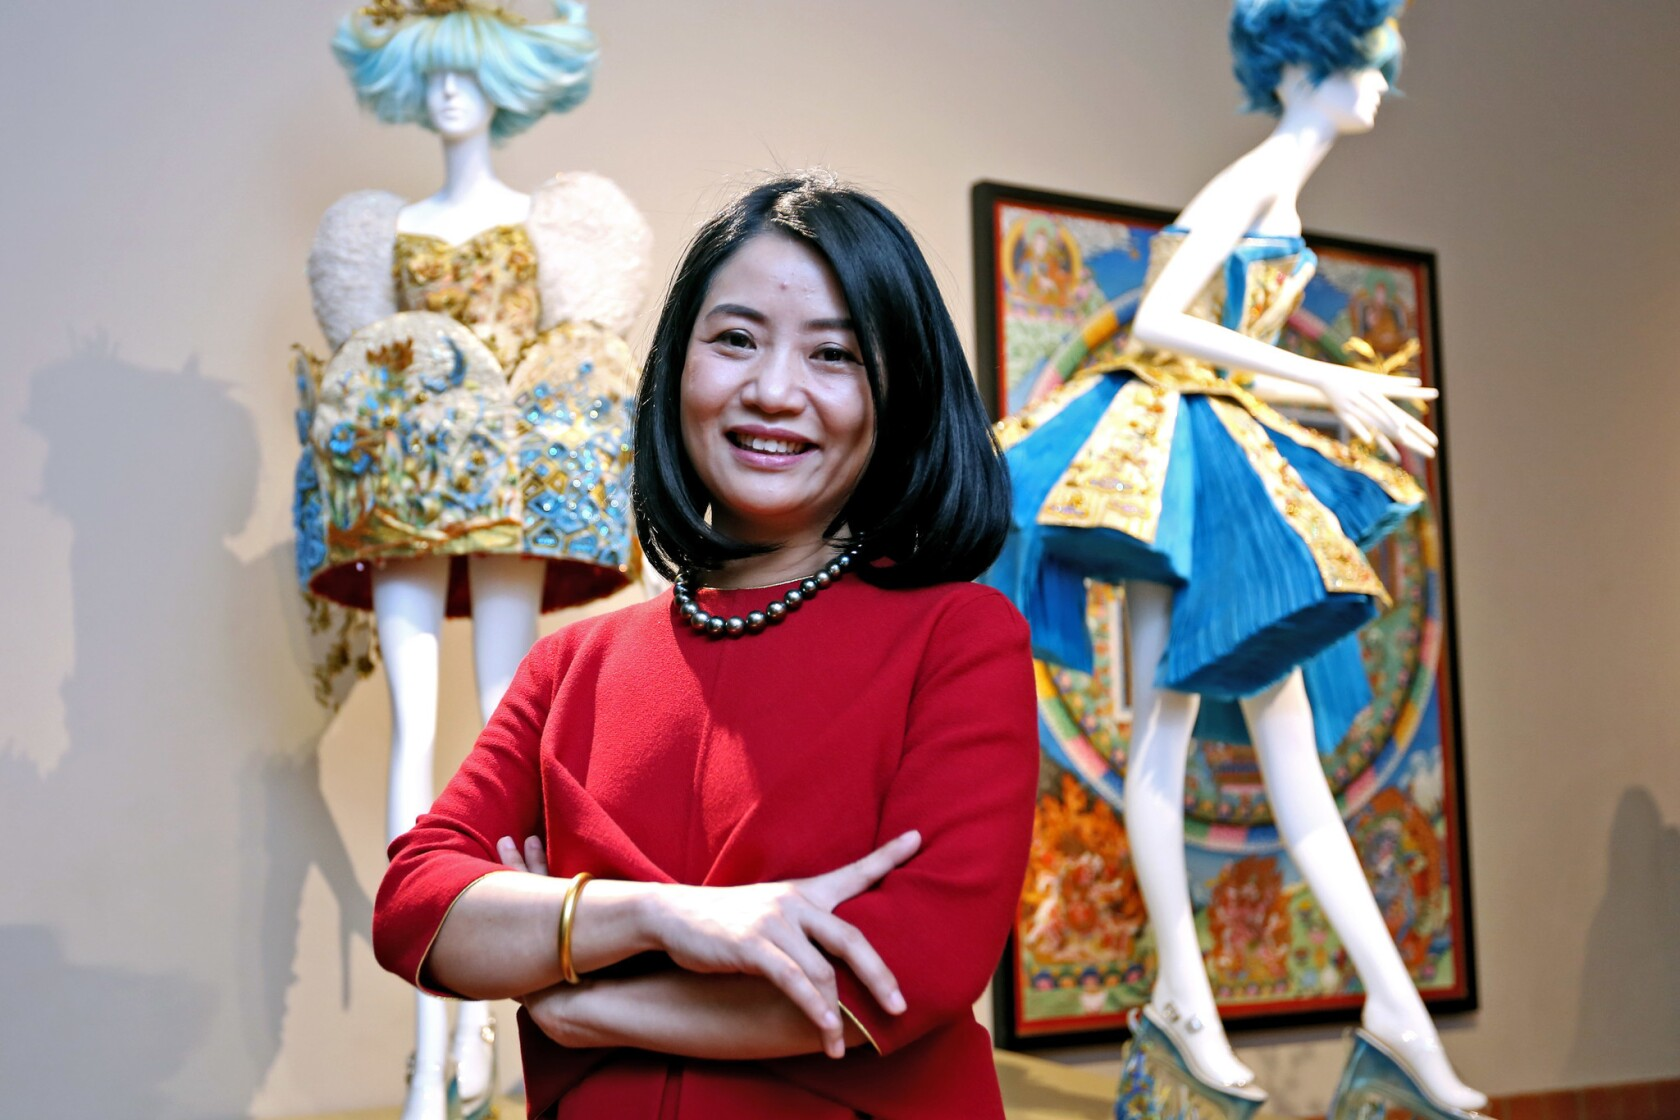 Guo Pei S Couture Designs Are Inspired By The Extravaganza Of Chinese Royal History Los Angeles Times